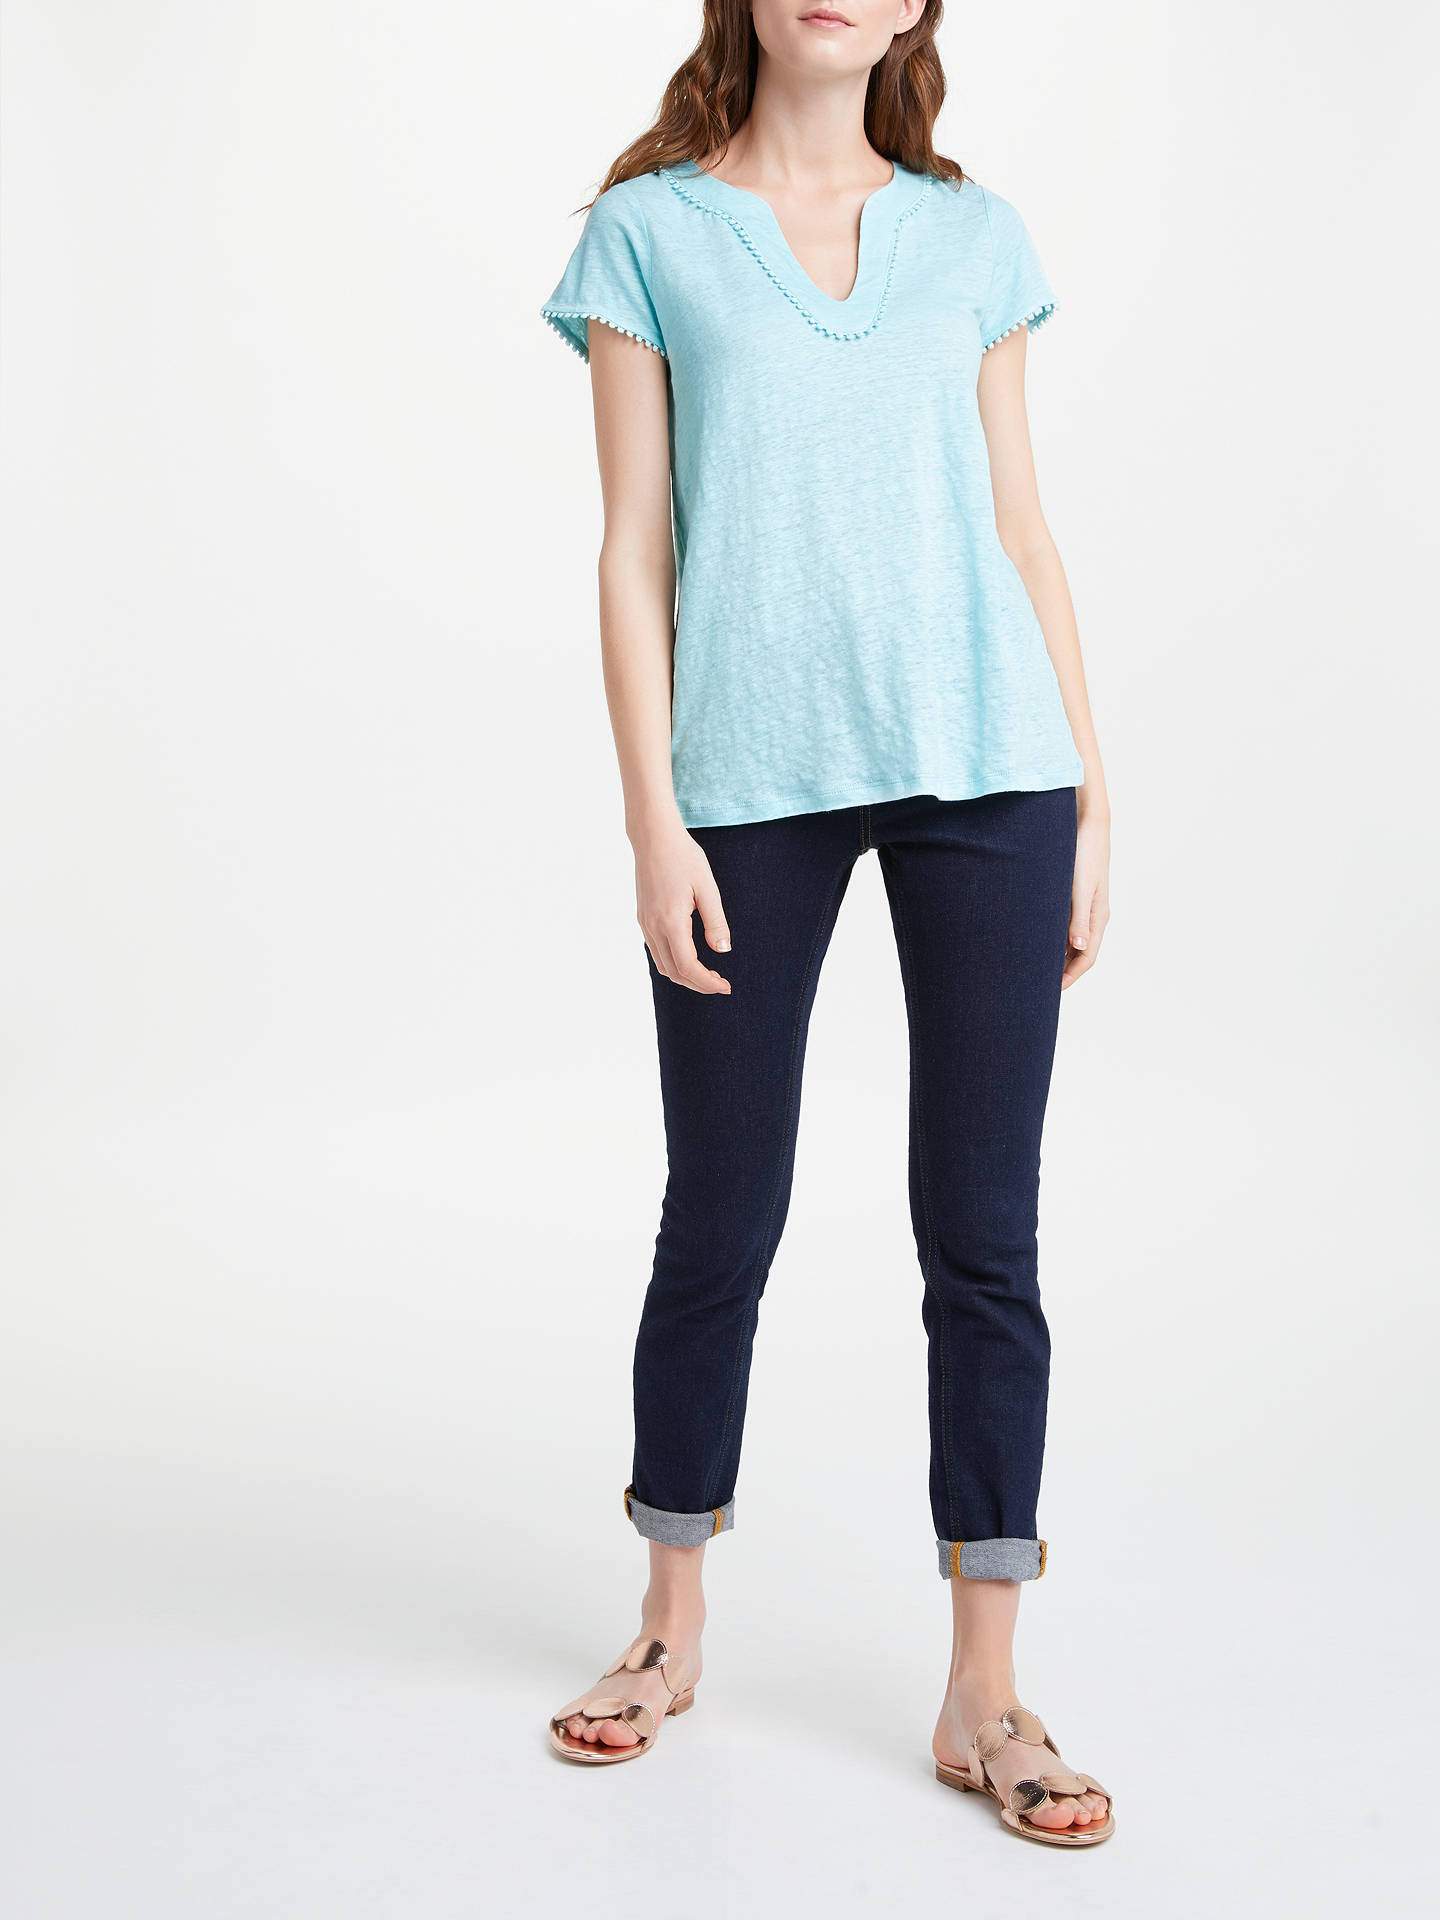 BuyBoden Linen Notch Neck Jersey Top, Pale Icicle, XS Online at johnlewis.com